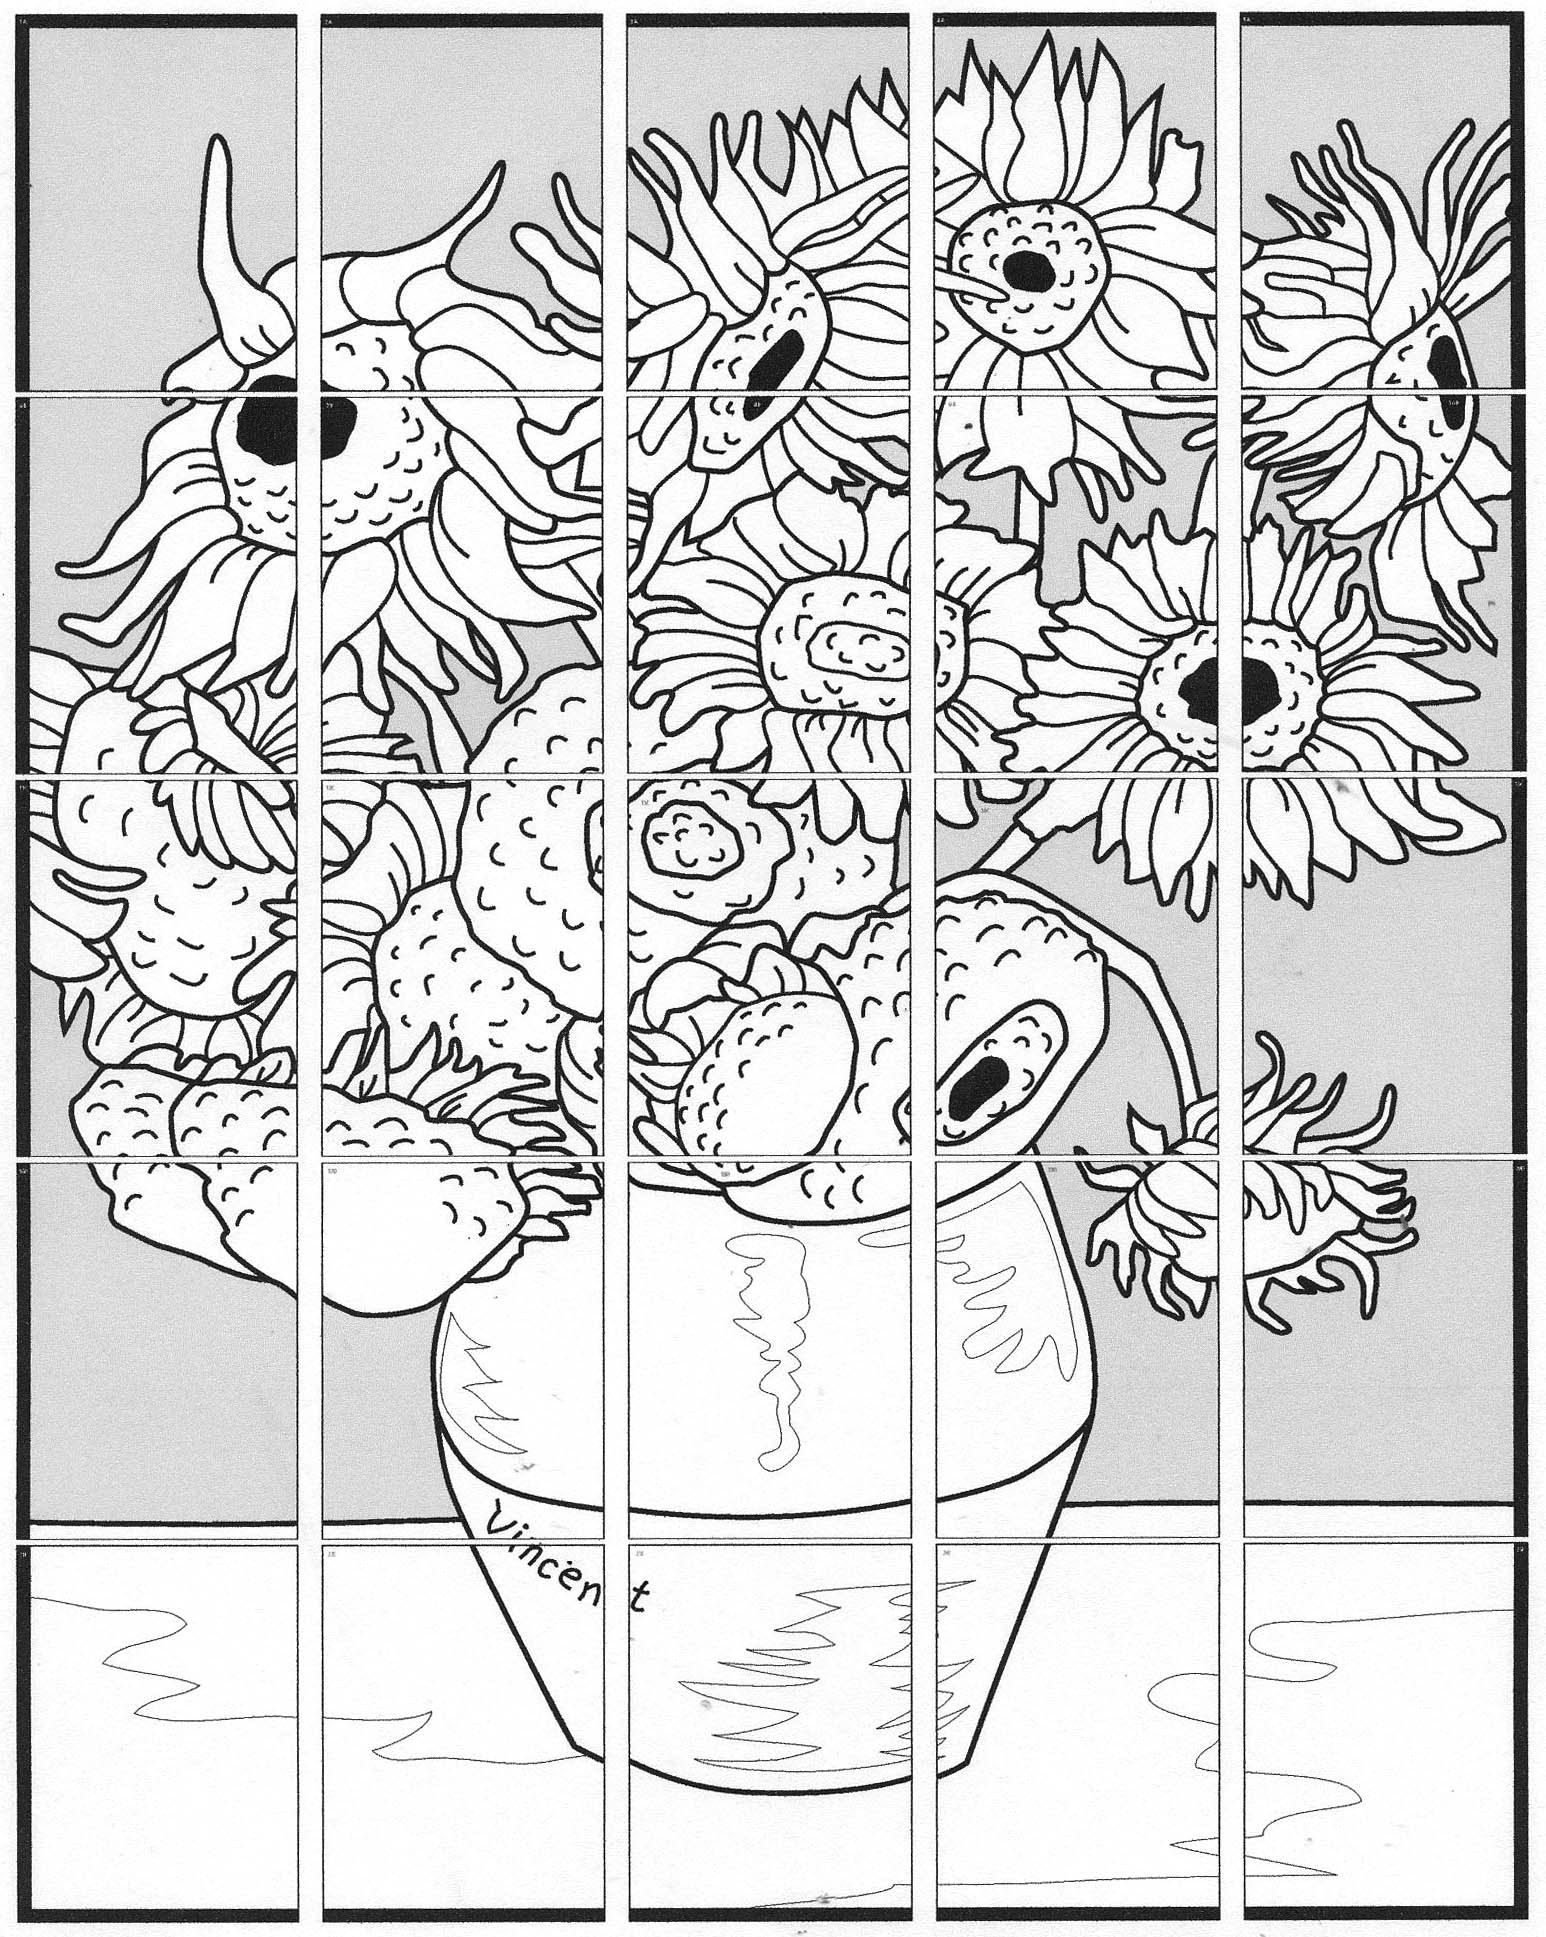 van gogh sunflowers coloring page sunflower coloring page van gogh sunflower coloring page coloring gogh sunflowers van page